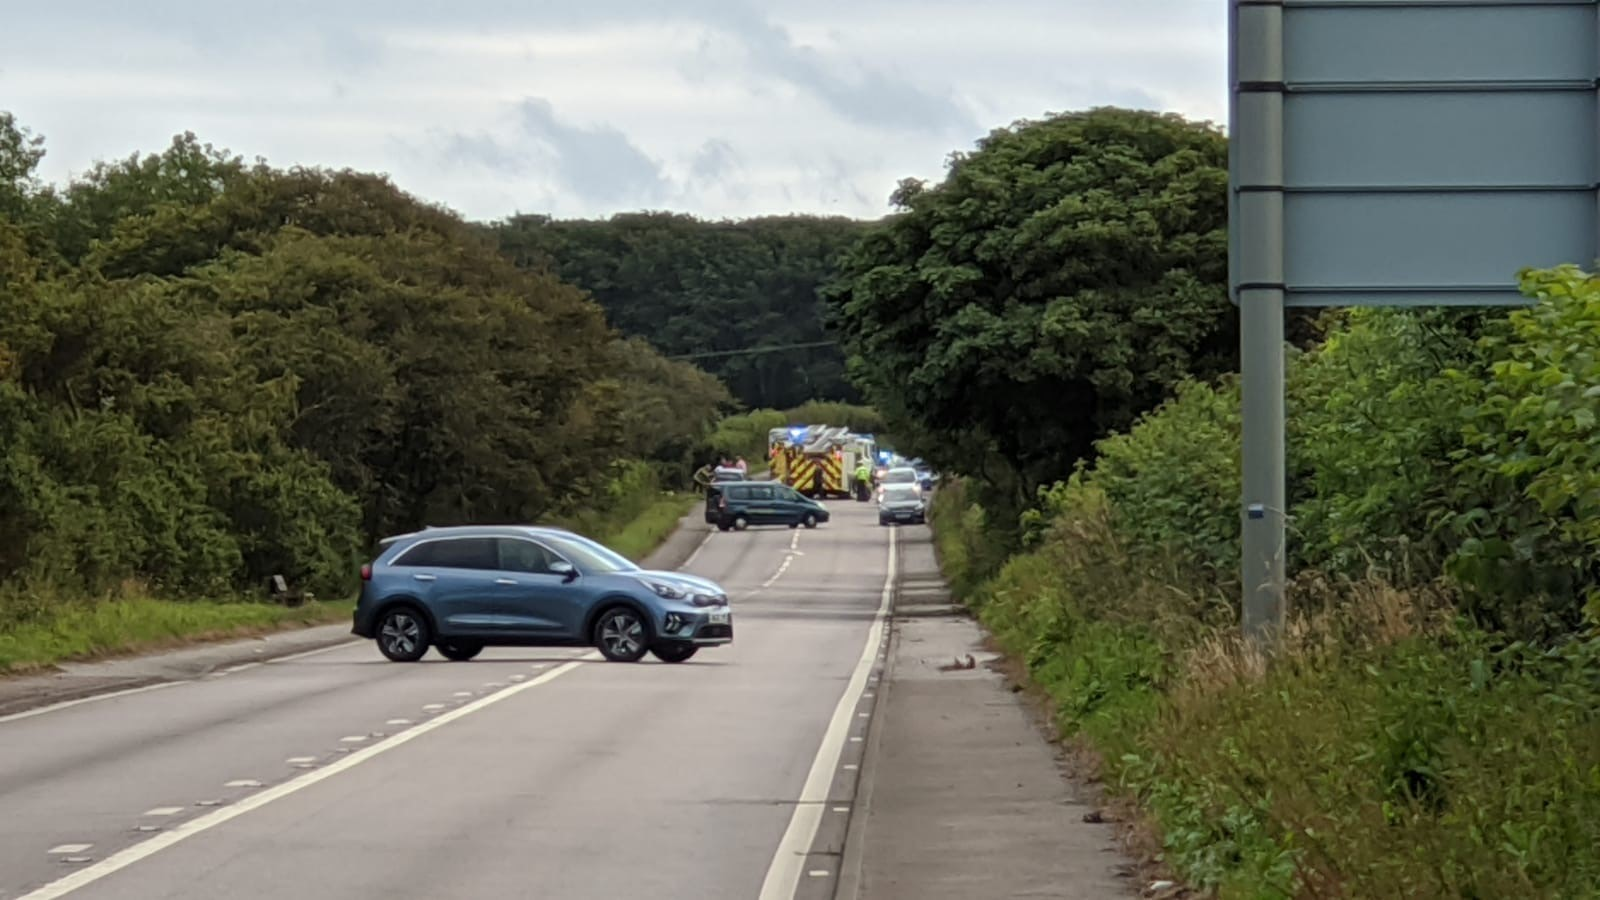 Emergency services at the scene of the crash on the A90